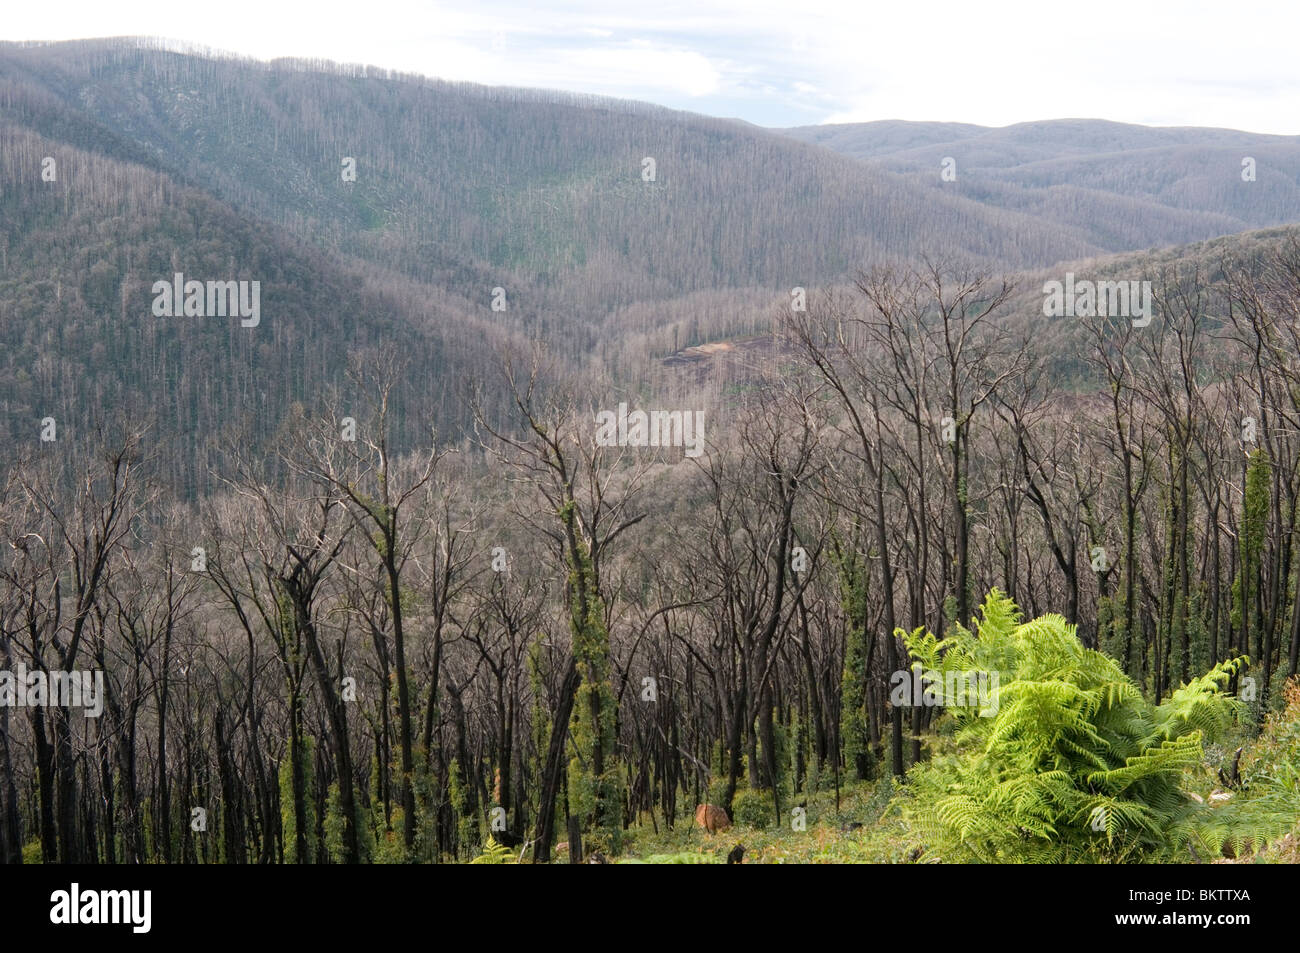 Regrowth after 15 months on hillsides ravaged by the Black Saturday (February 2009) bushfires at Marysville, Victoria - Stock Image